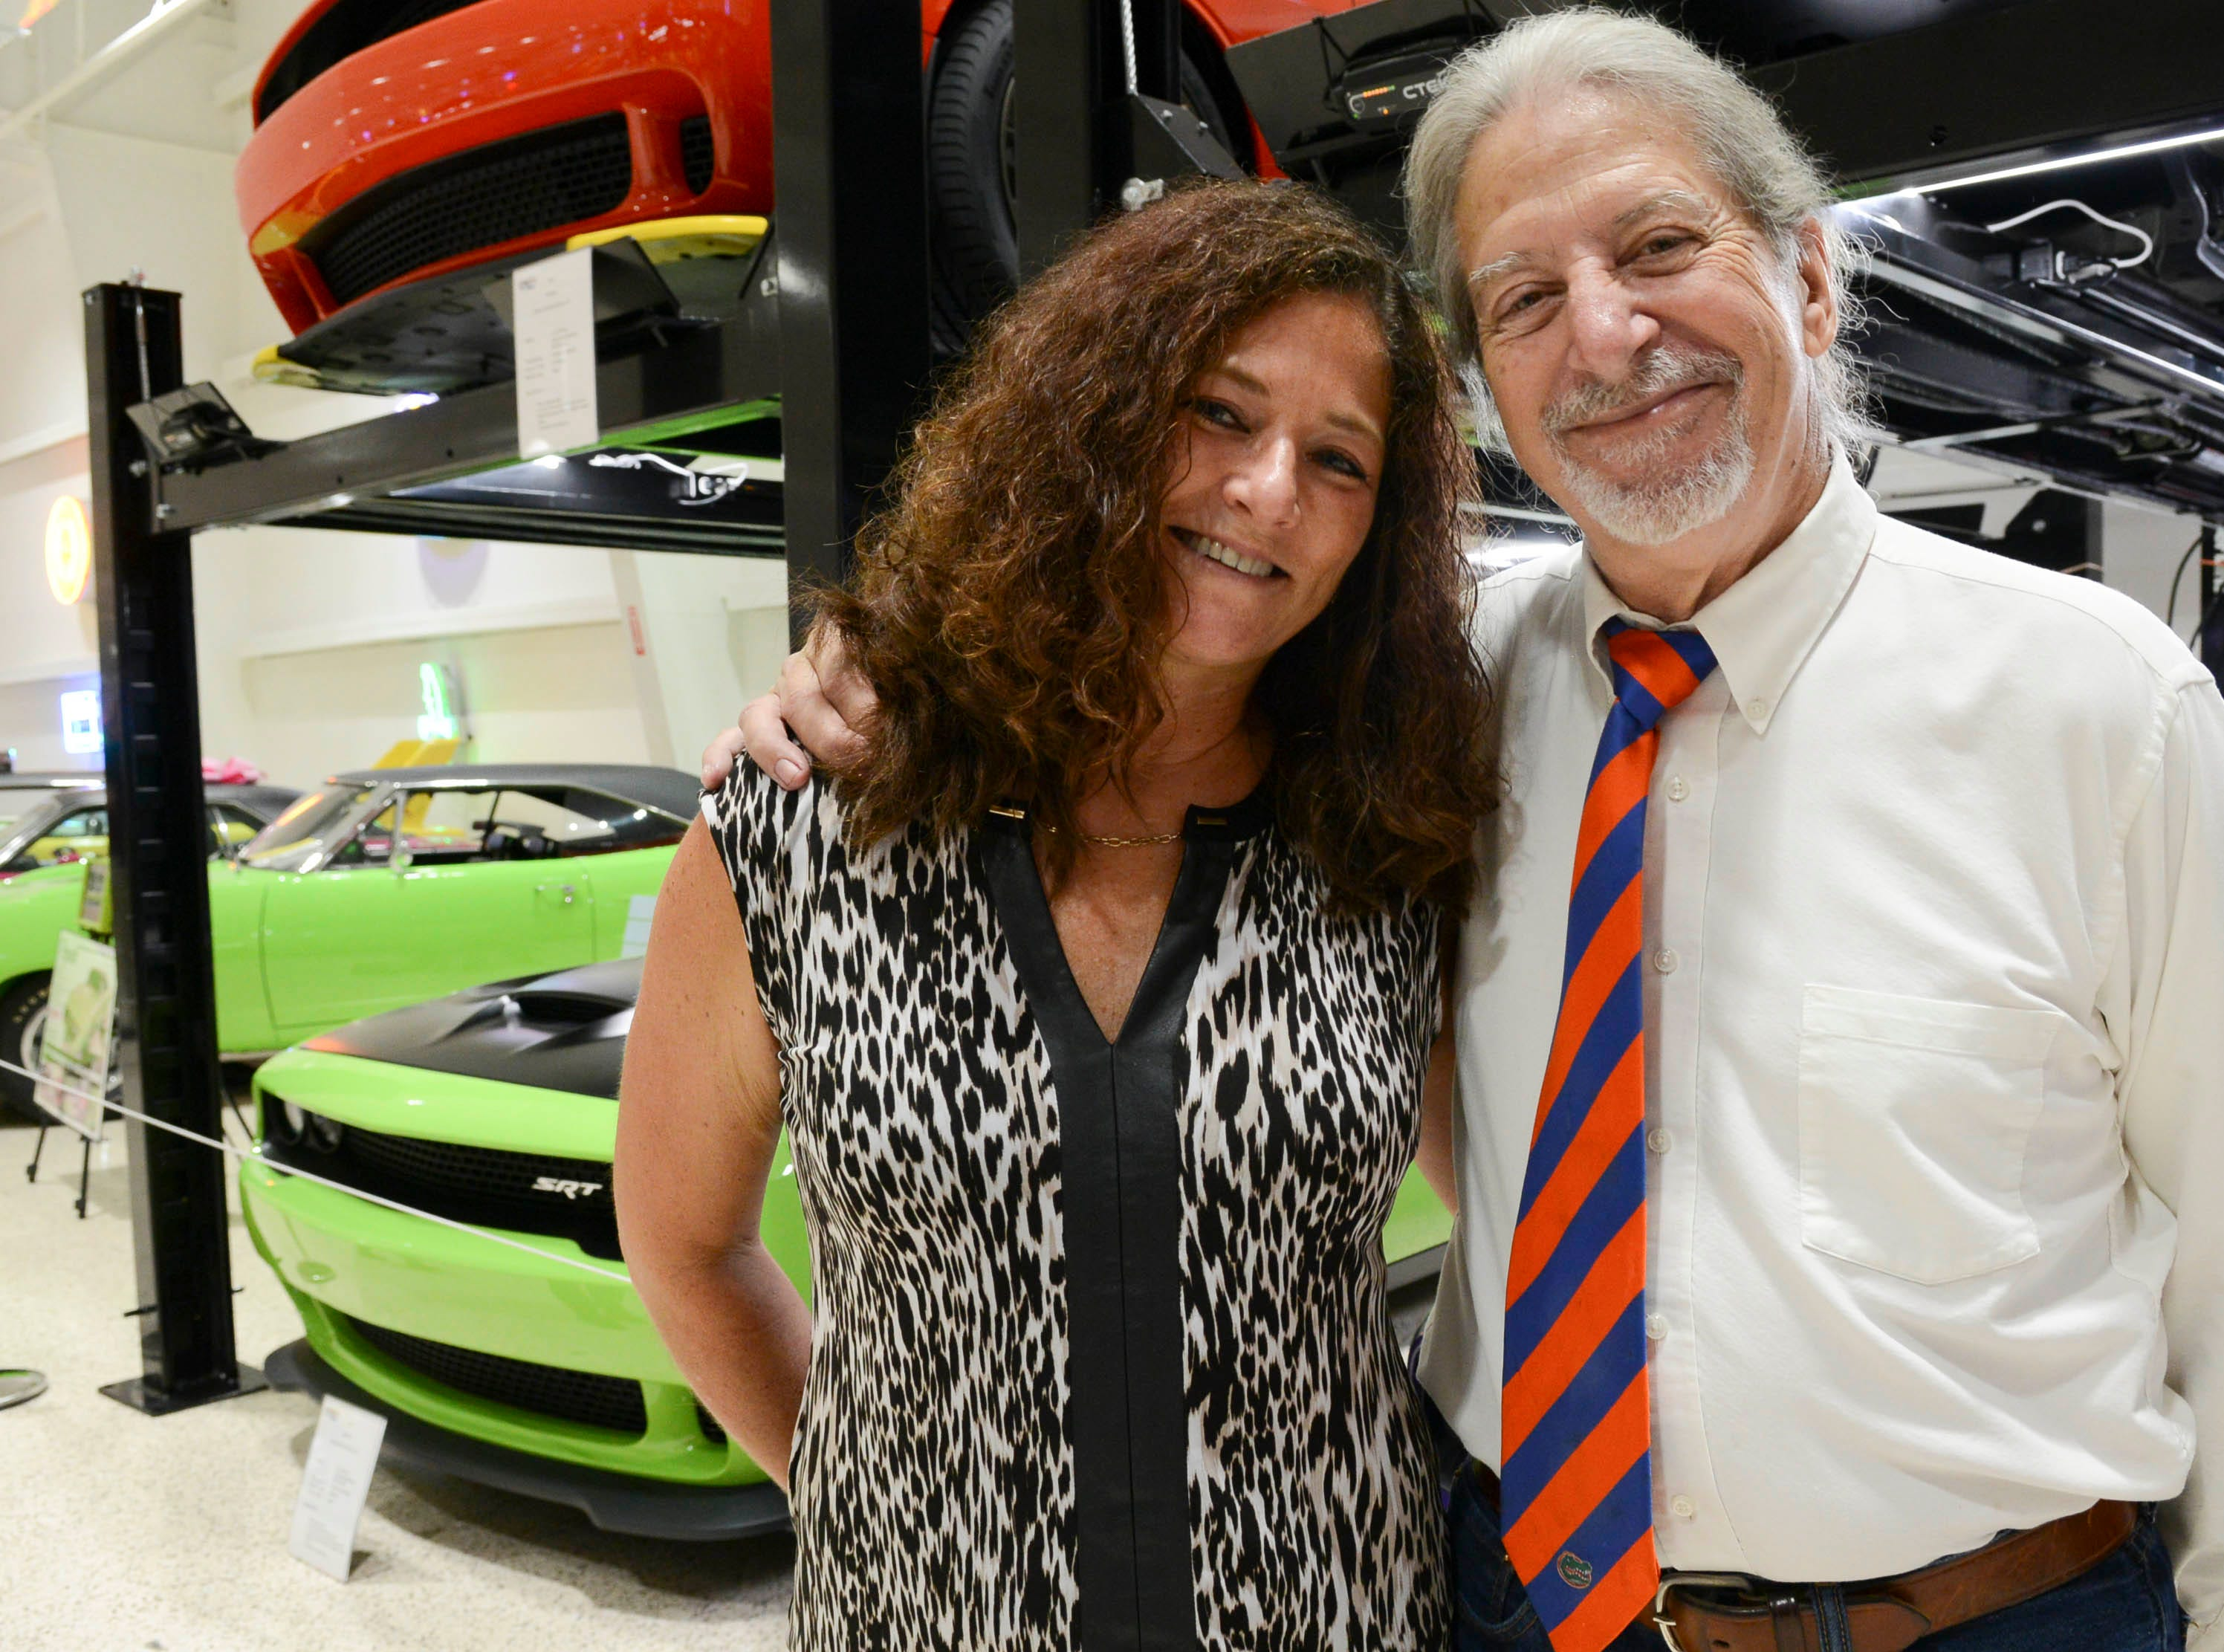 Liz Allen and Lloyd Behrendt get their picture taken during the Stars and Stripes fundraiser at American Muscle Car Museum. The event was a fundraiser for Space Coast Honor Flight.